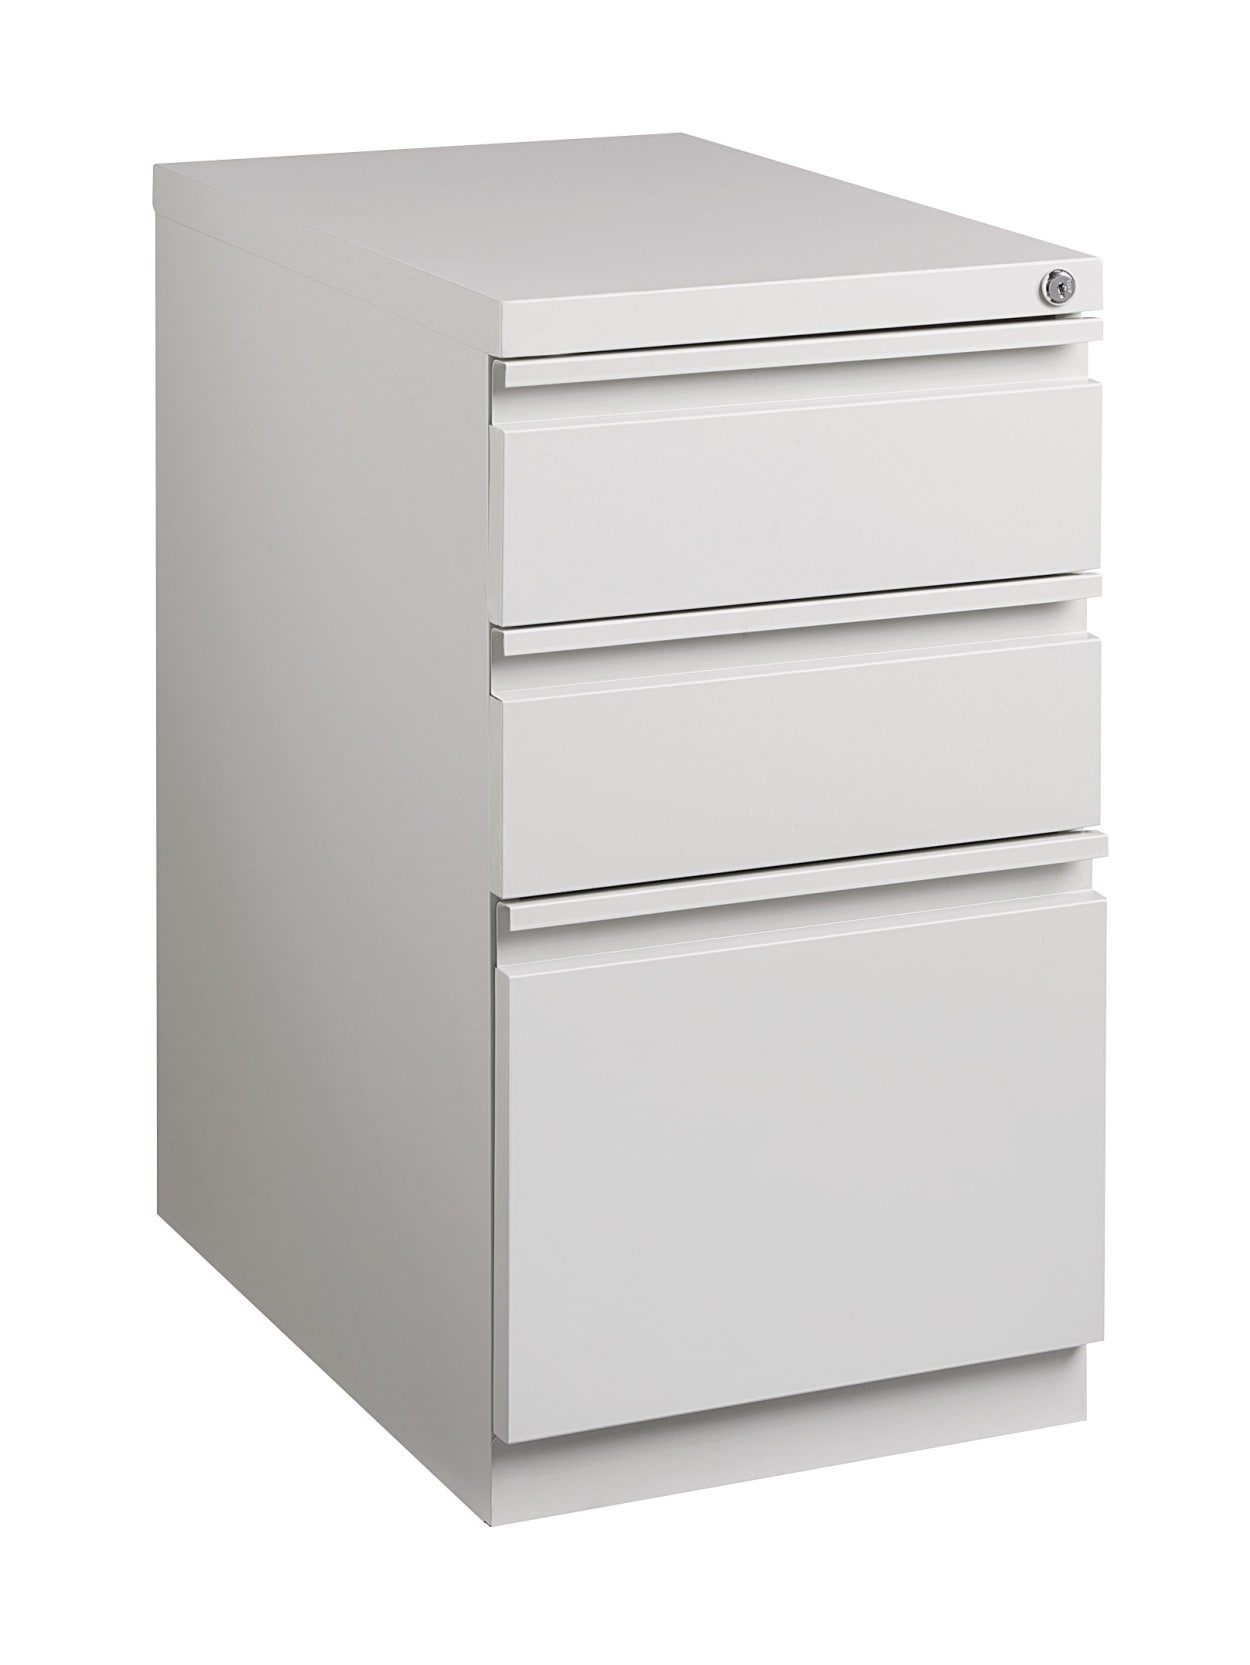 WorkPro 322 D Vertical 32 Drawer Mobile Pedestal File Cabinet Metal